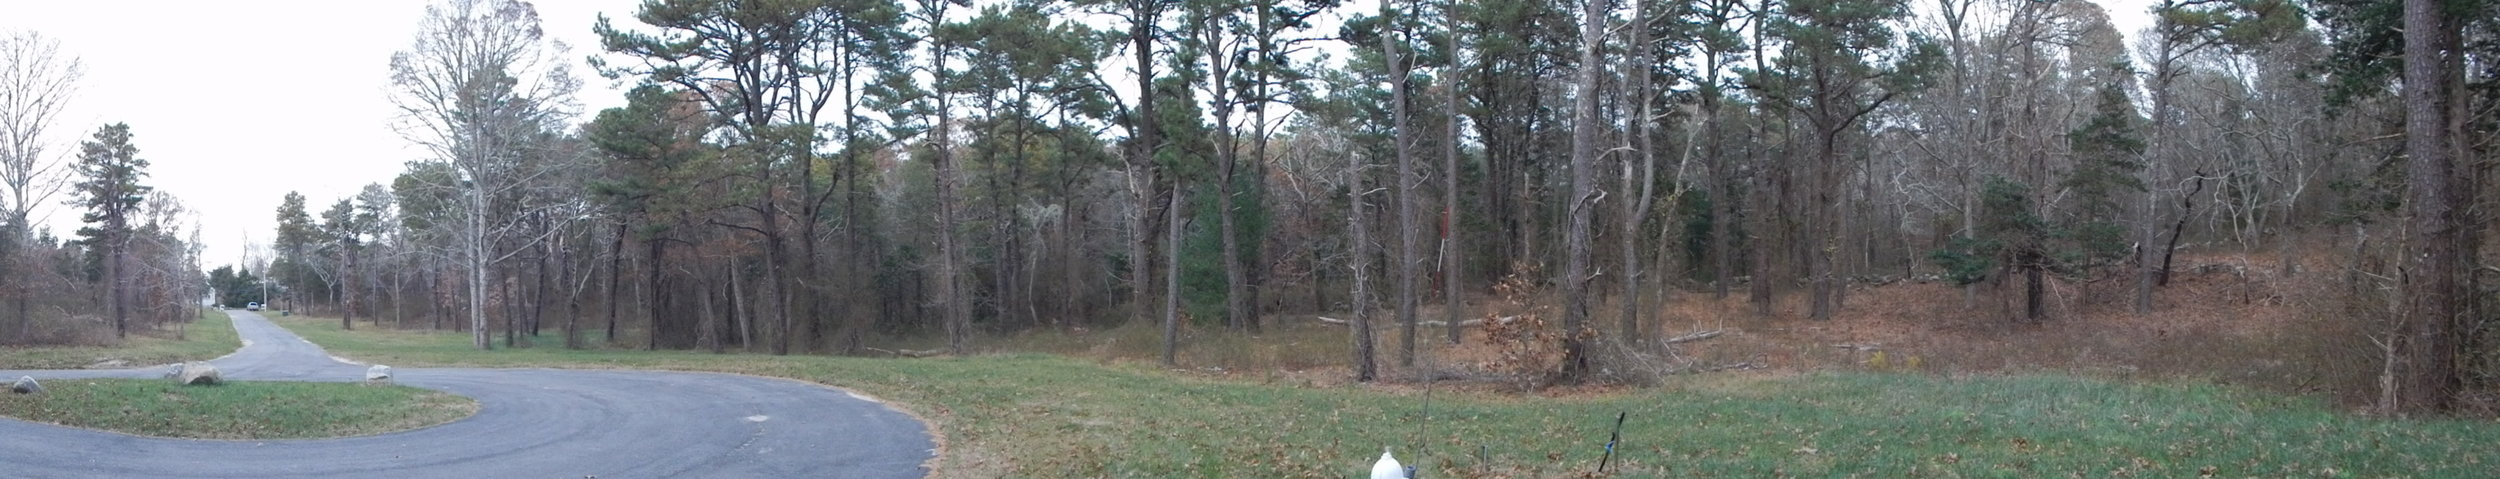 View from back of property to Main St.